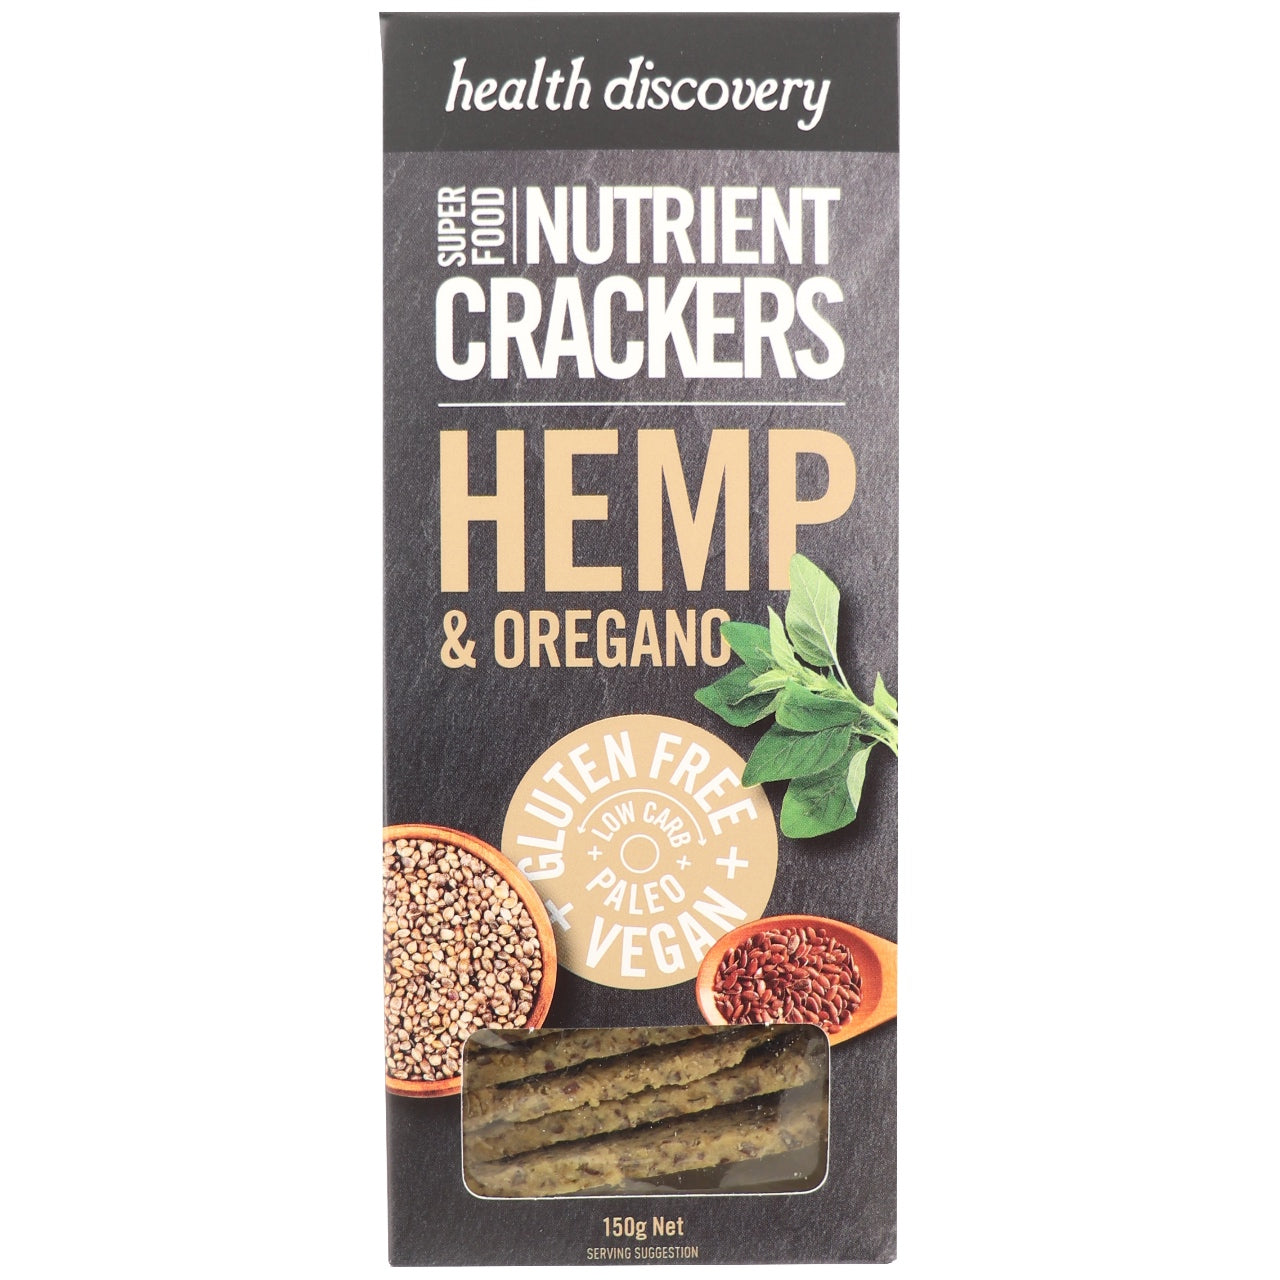 Health Discovery Nutrient Crackers -Hemp & Oregano